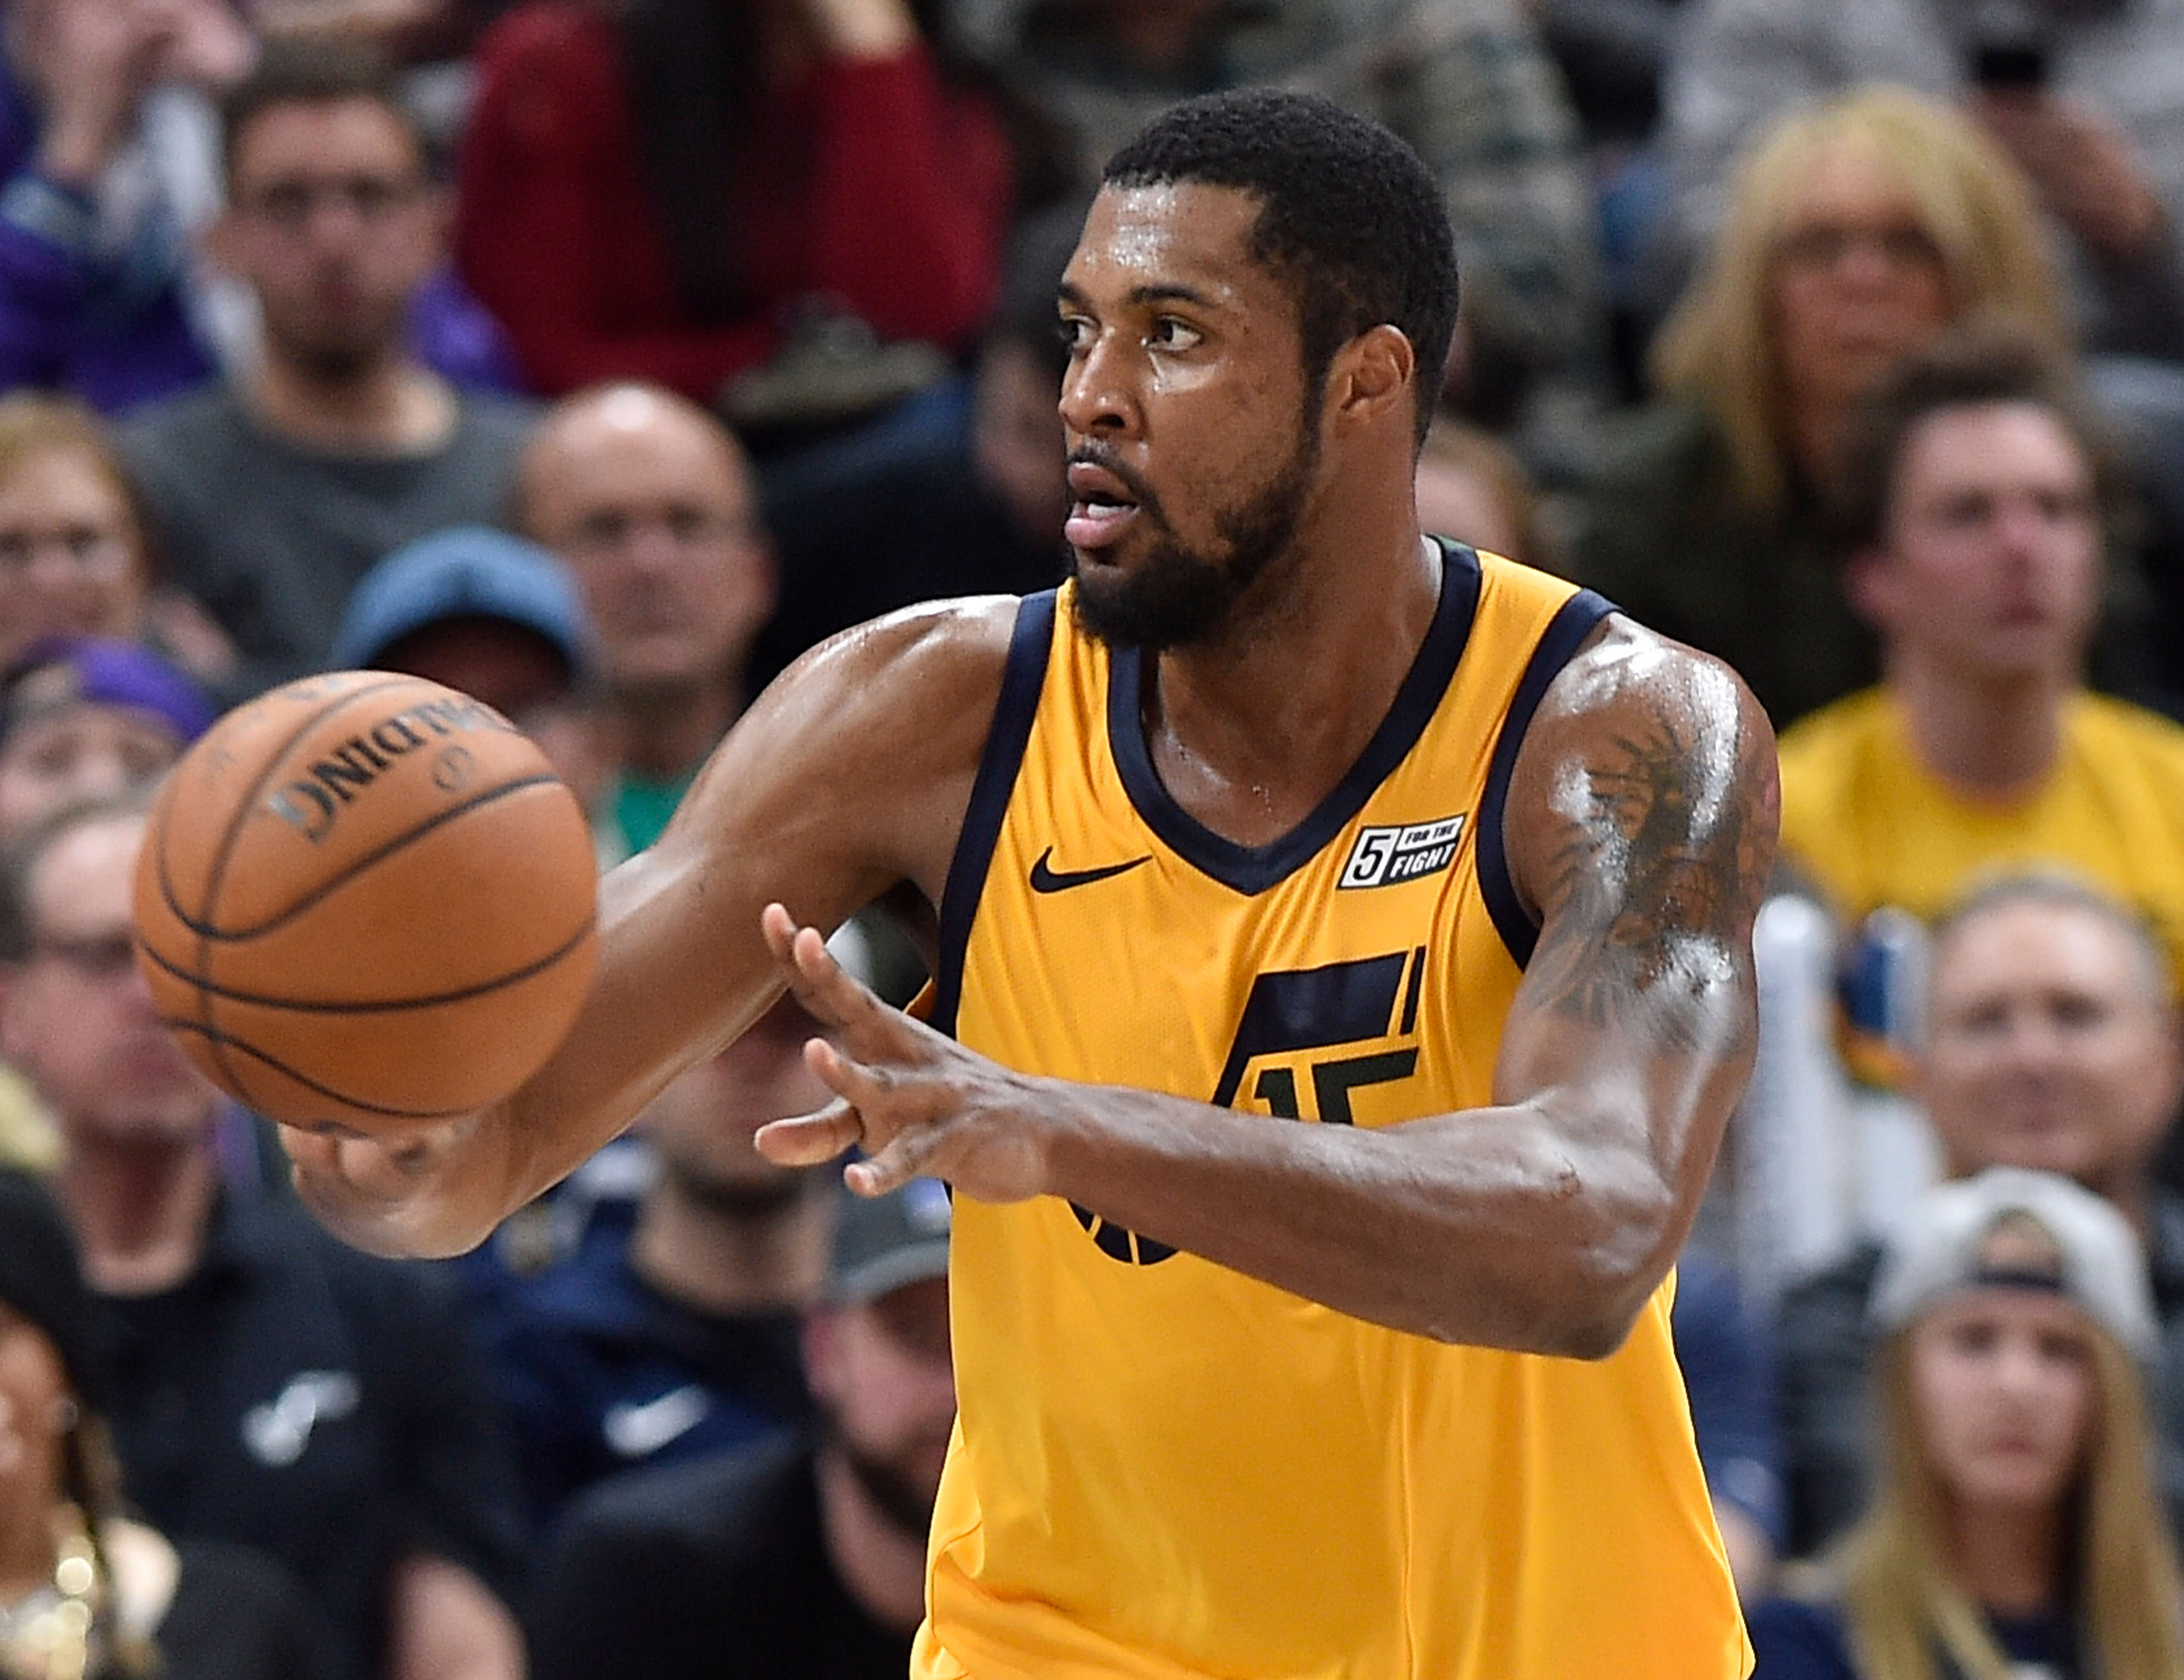 Derrick Favors agrees to 2-year, $36M deal to return to Jazz